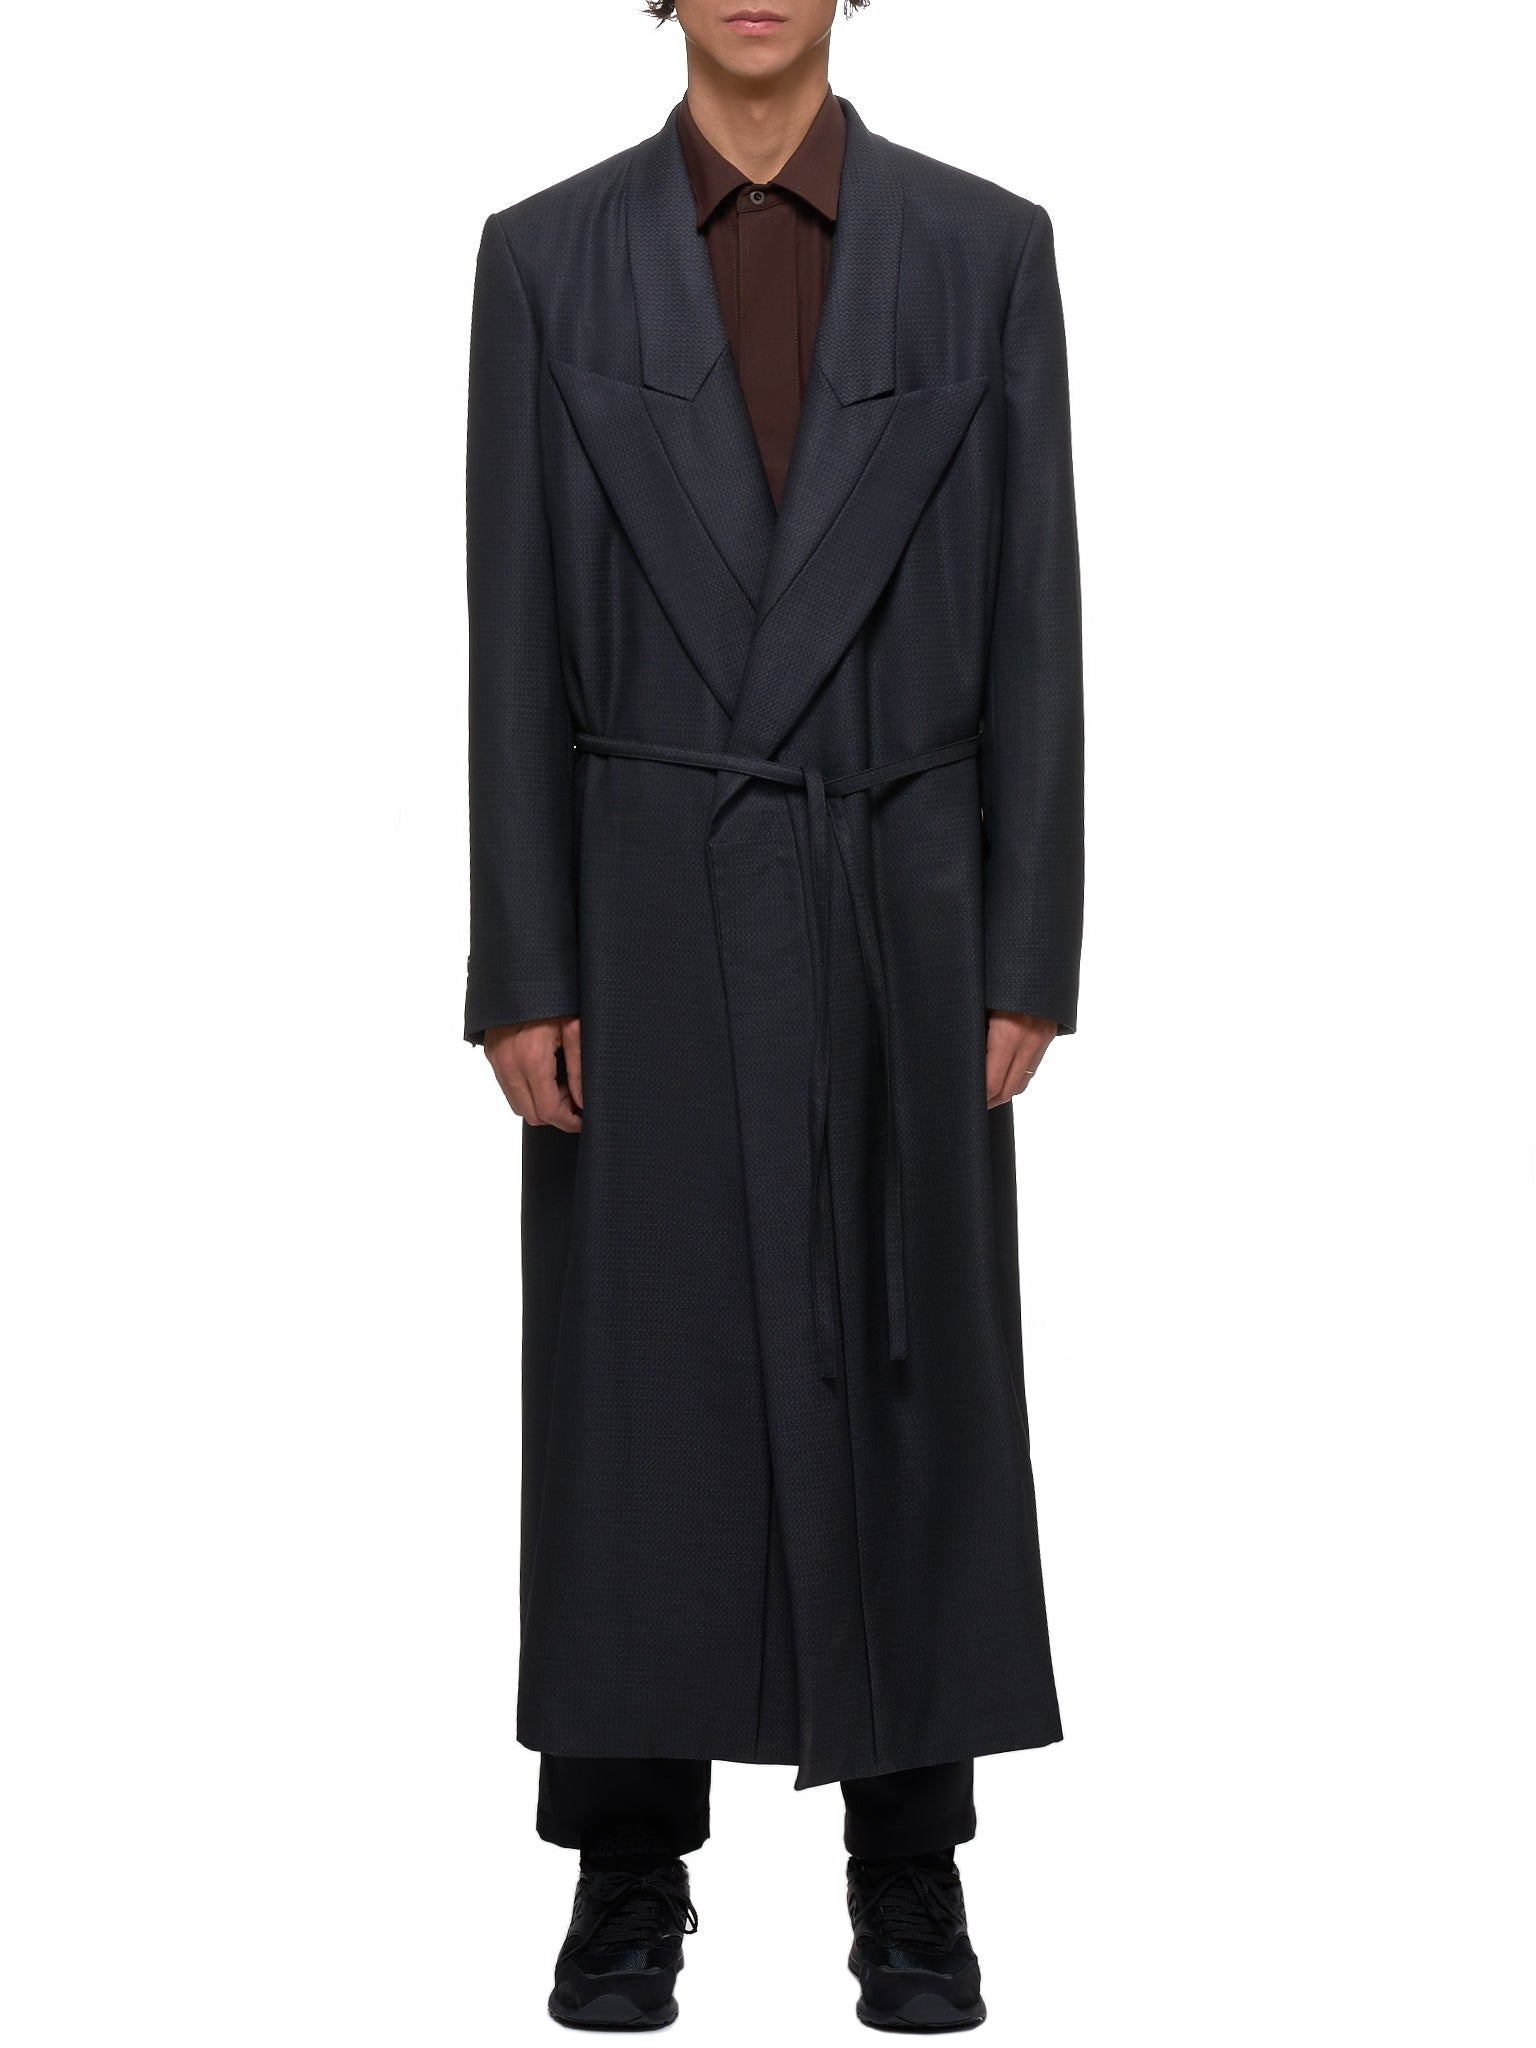 Check Coat (PD-J032-051-1-4-CHARCOAL-GRAY)